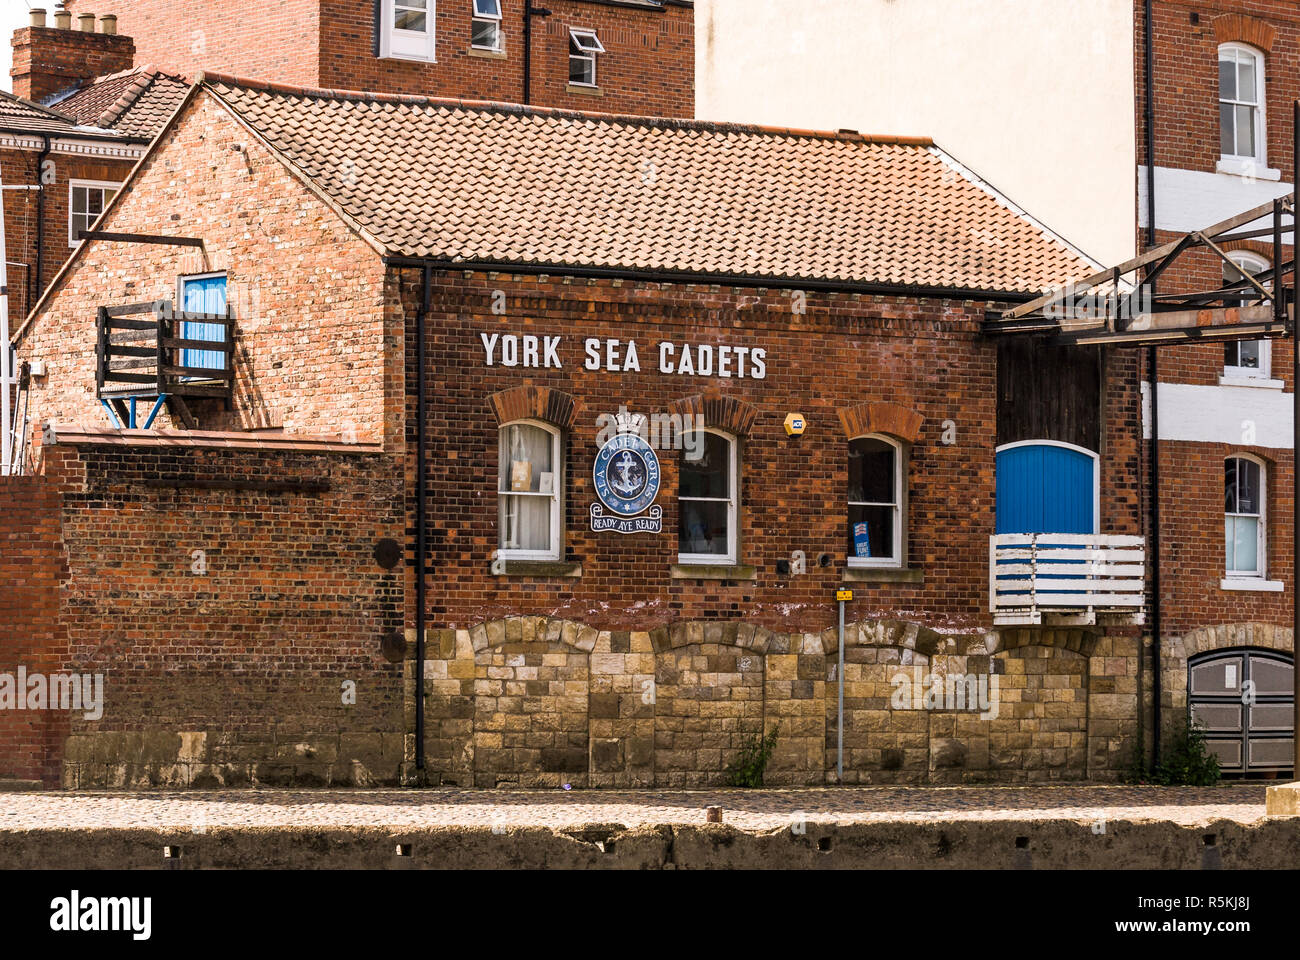 York Sea Cadets headquarters on Skeldergate. Training of young people in seamanship, discipline and life skills to better equip them for their future. - Stock Image